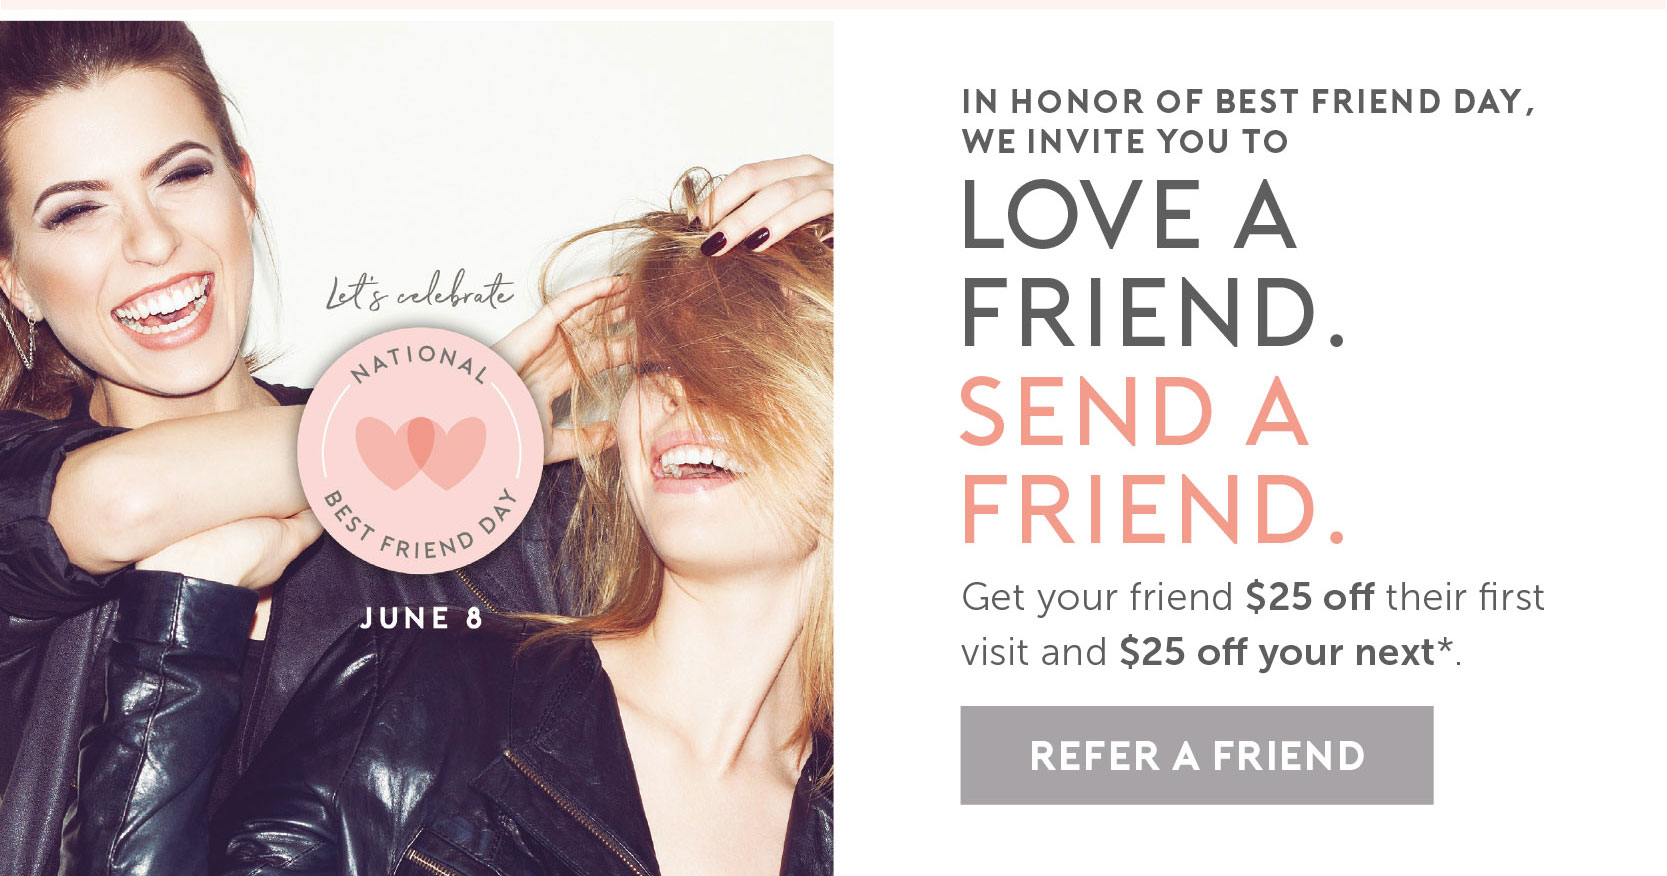 In honor of National Best Friends Day on June 8 we invite you to Love a Friend. Send a Friend. Get your friend $25 off their first visit and $25 off your next